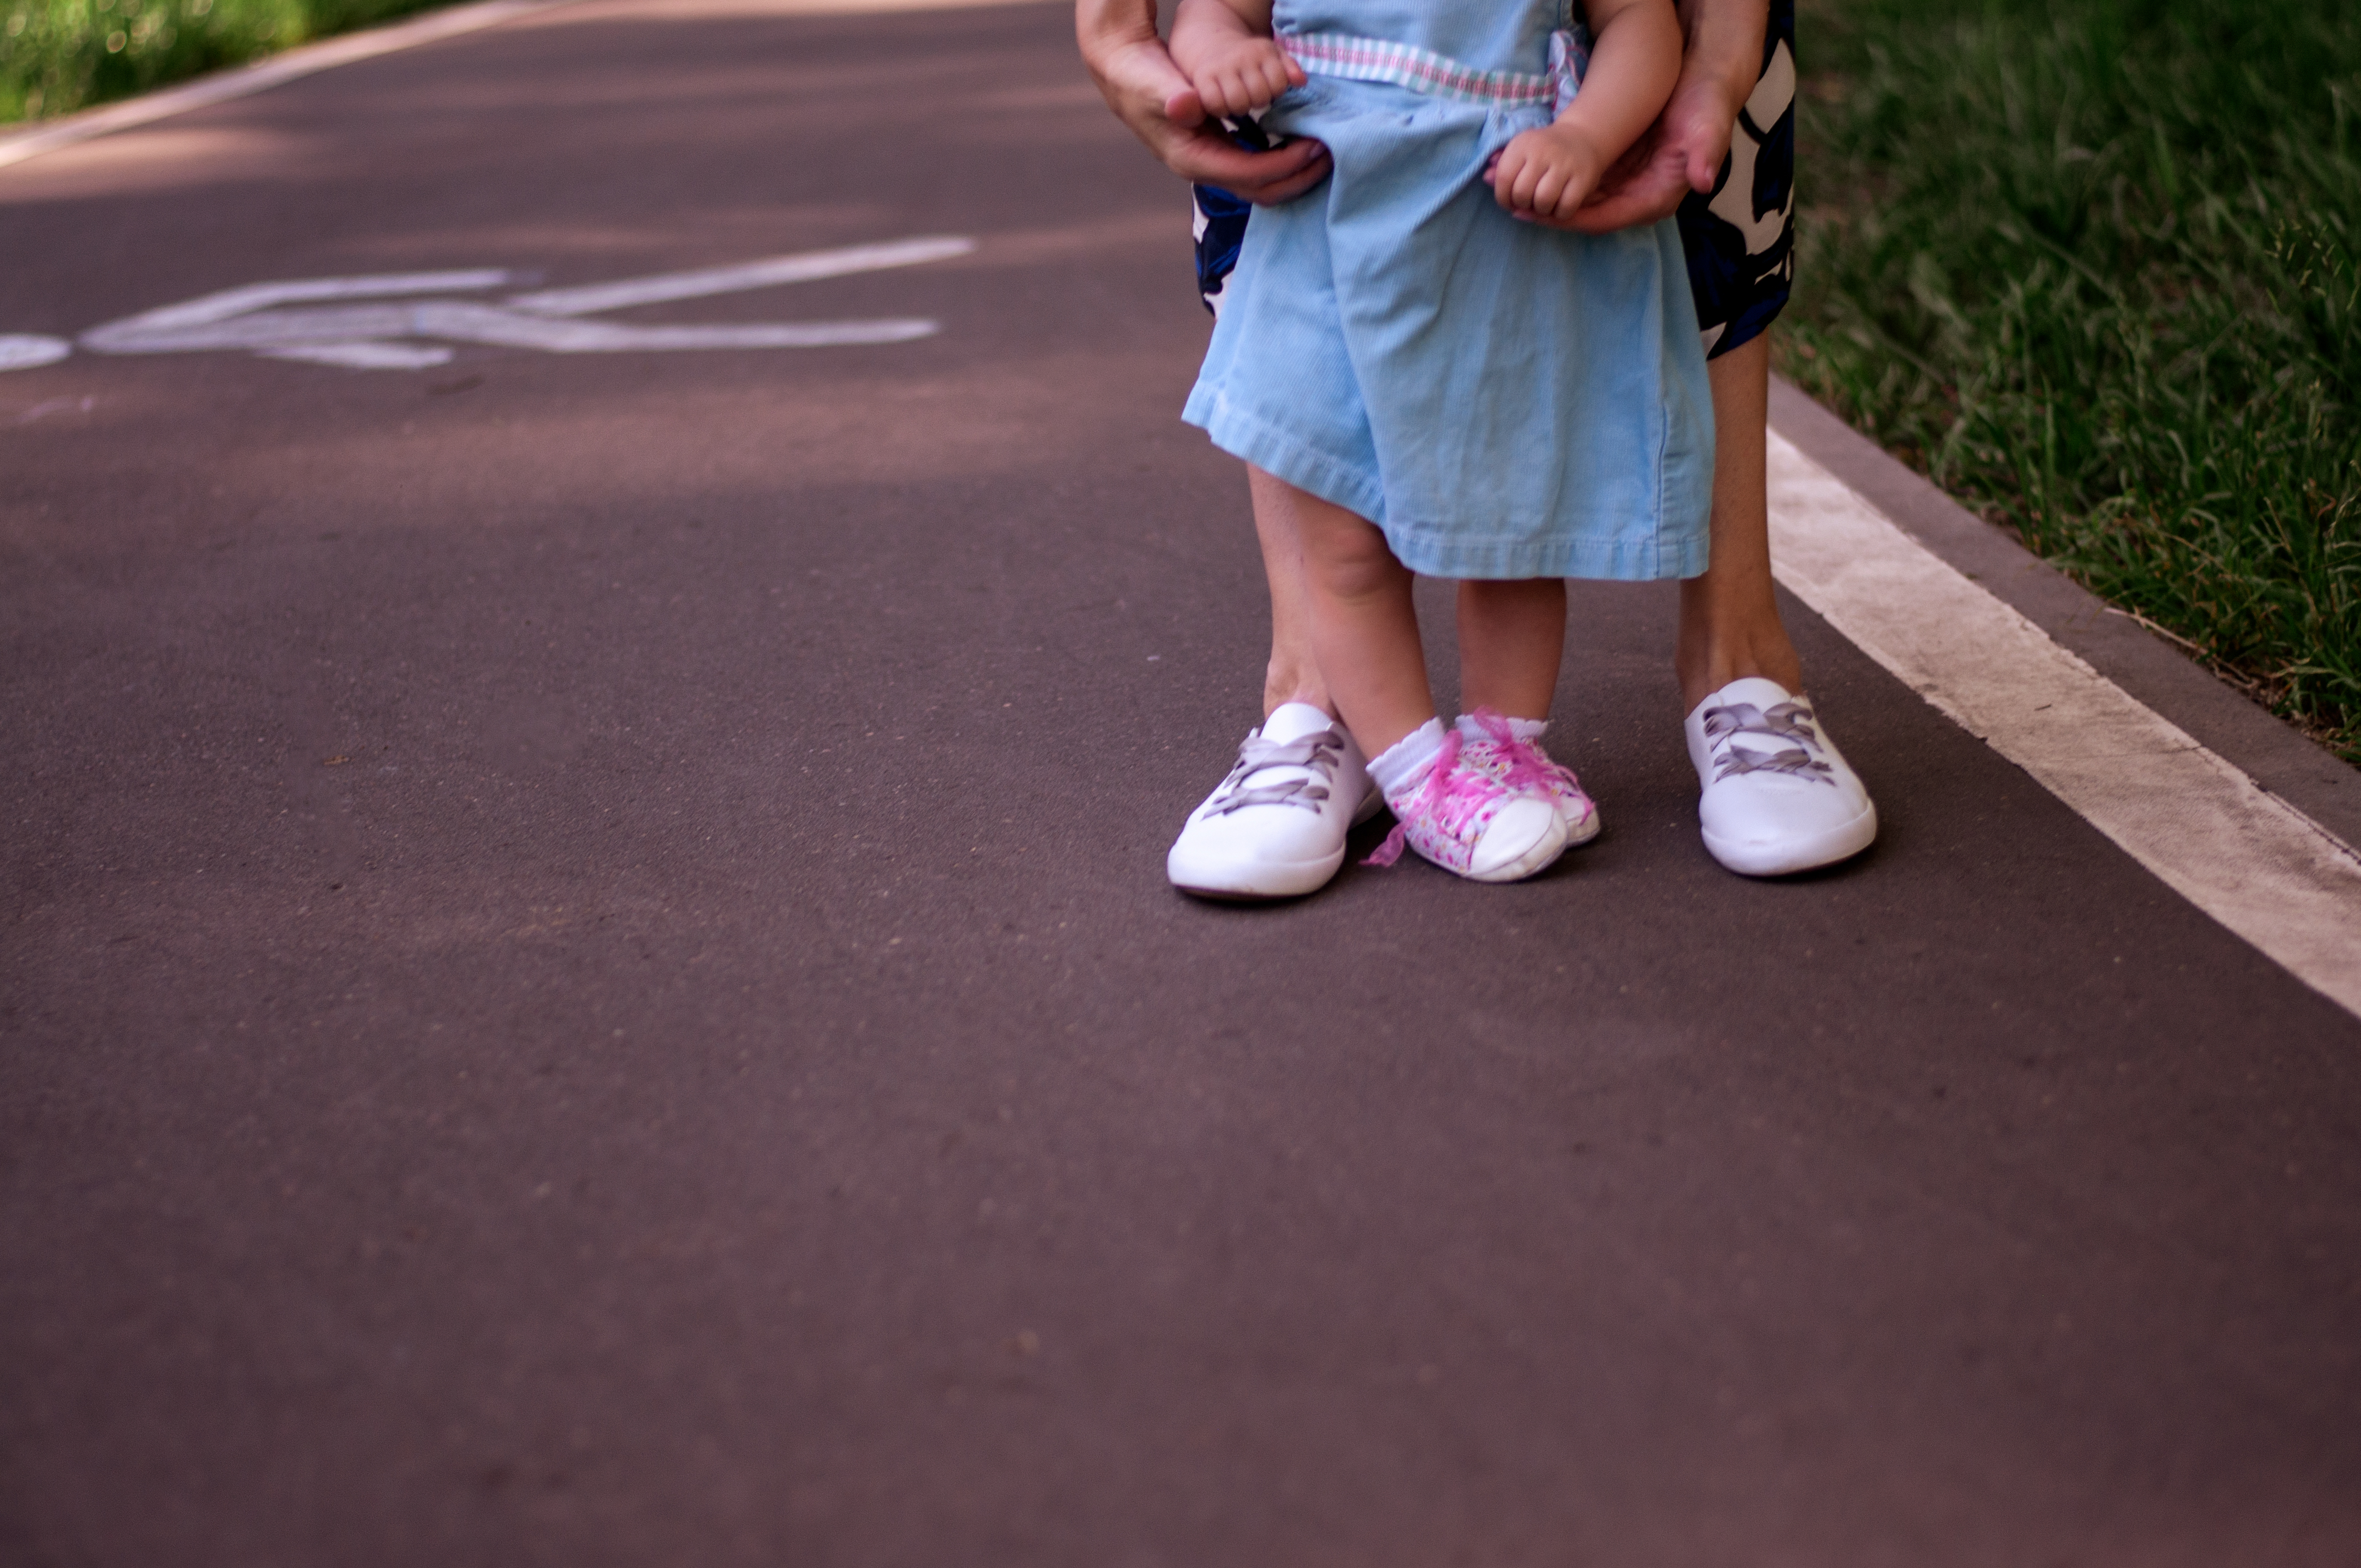 Mom teaches daughter to walk. Summer park, legs closeup. Mom with a one-year-old daughter in dresses are walking in the park. Teaching children, motherhood